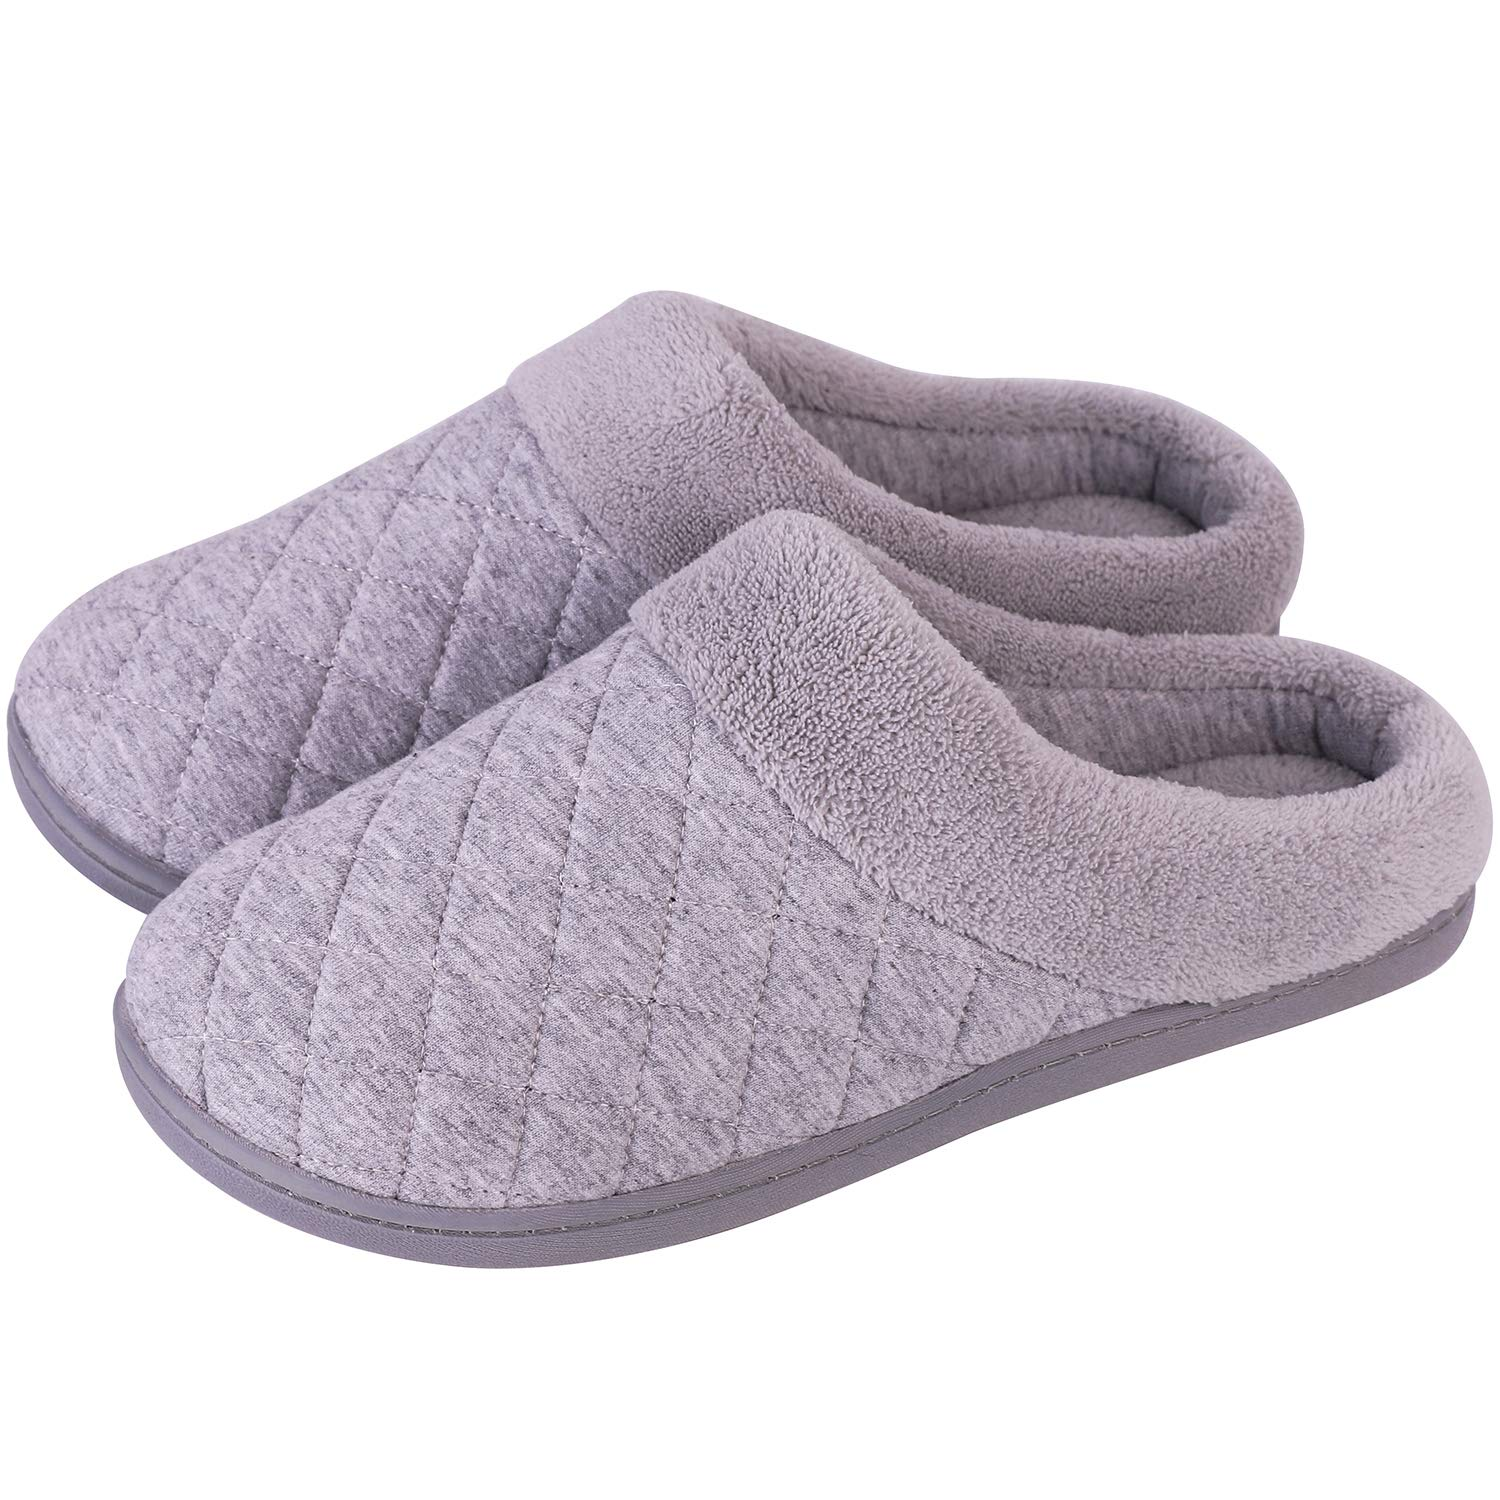 Men's and Women's Comfort Quilted Memory Foam Fleece Lining House Slippers Slip On Clog House Shoes